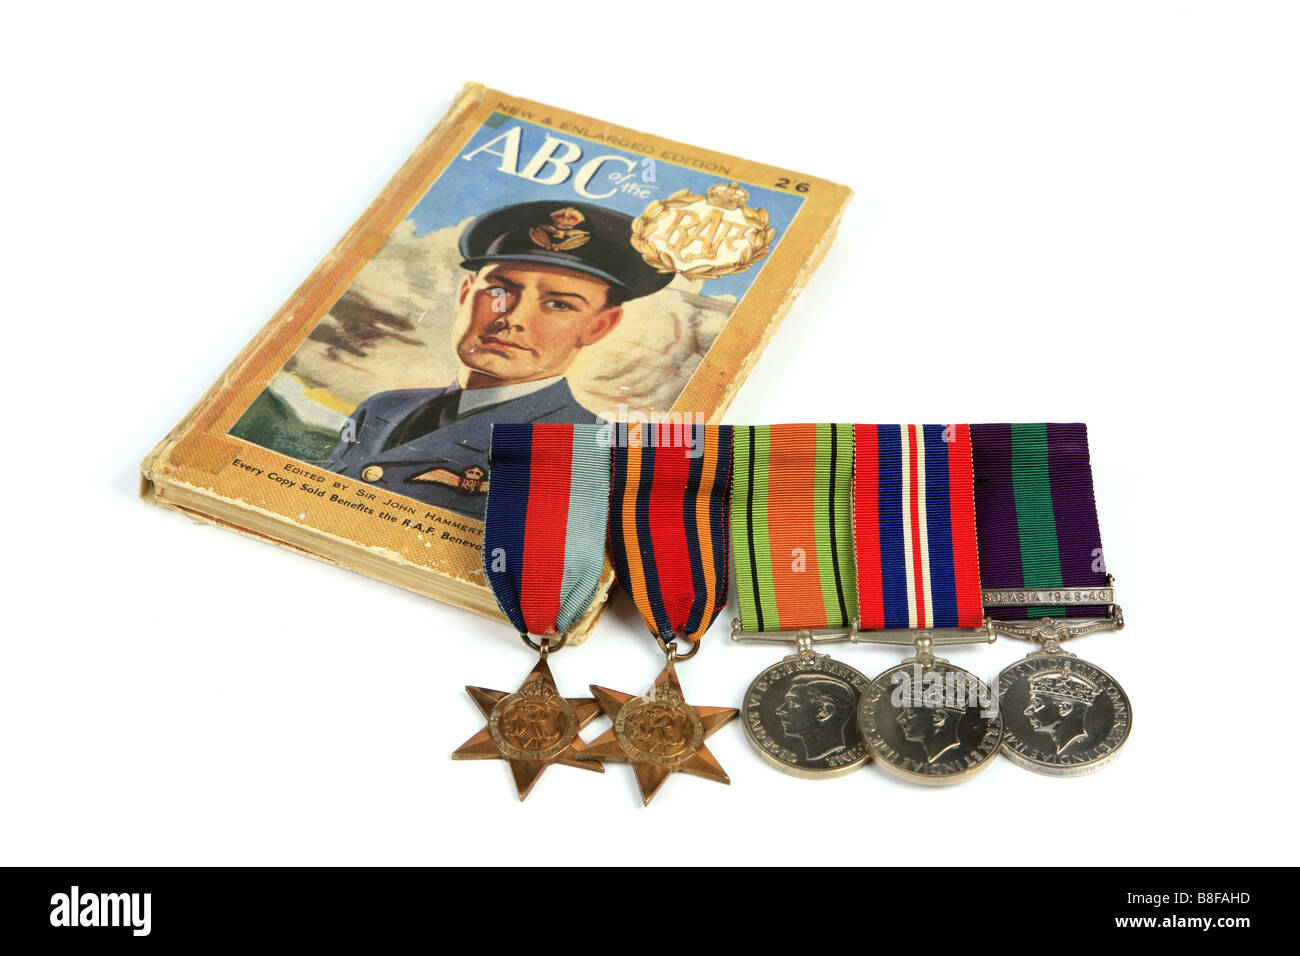 A WW2 Recruitment book and a group of British WW2 Medals against a white background - Stock Image